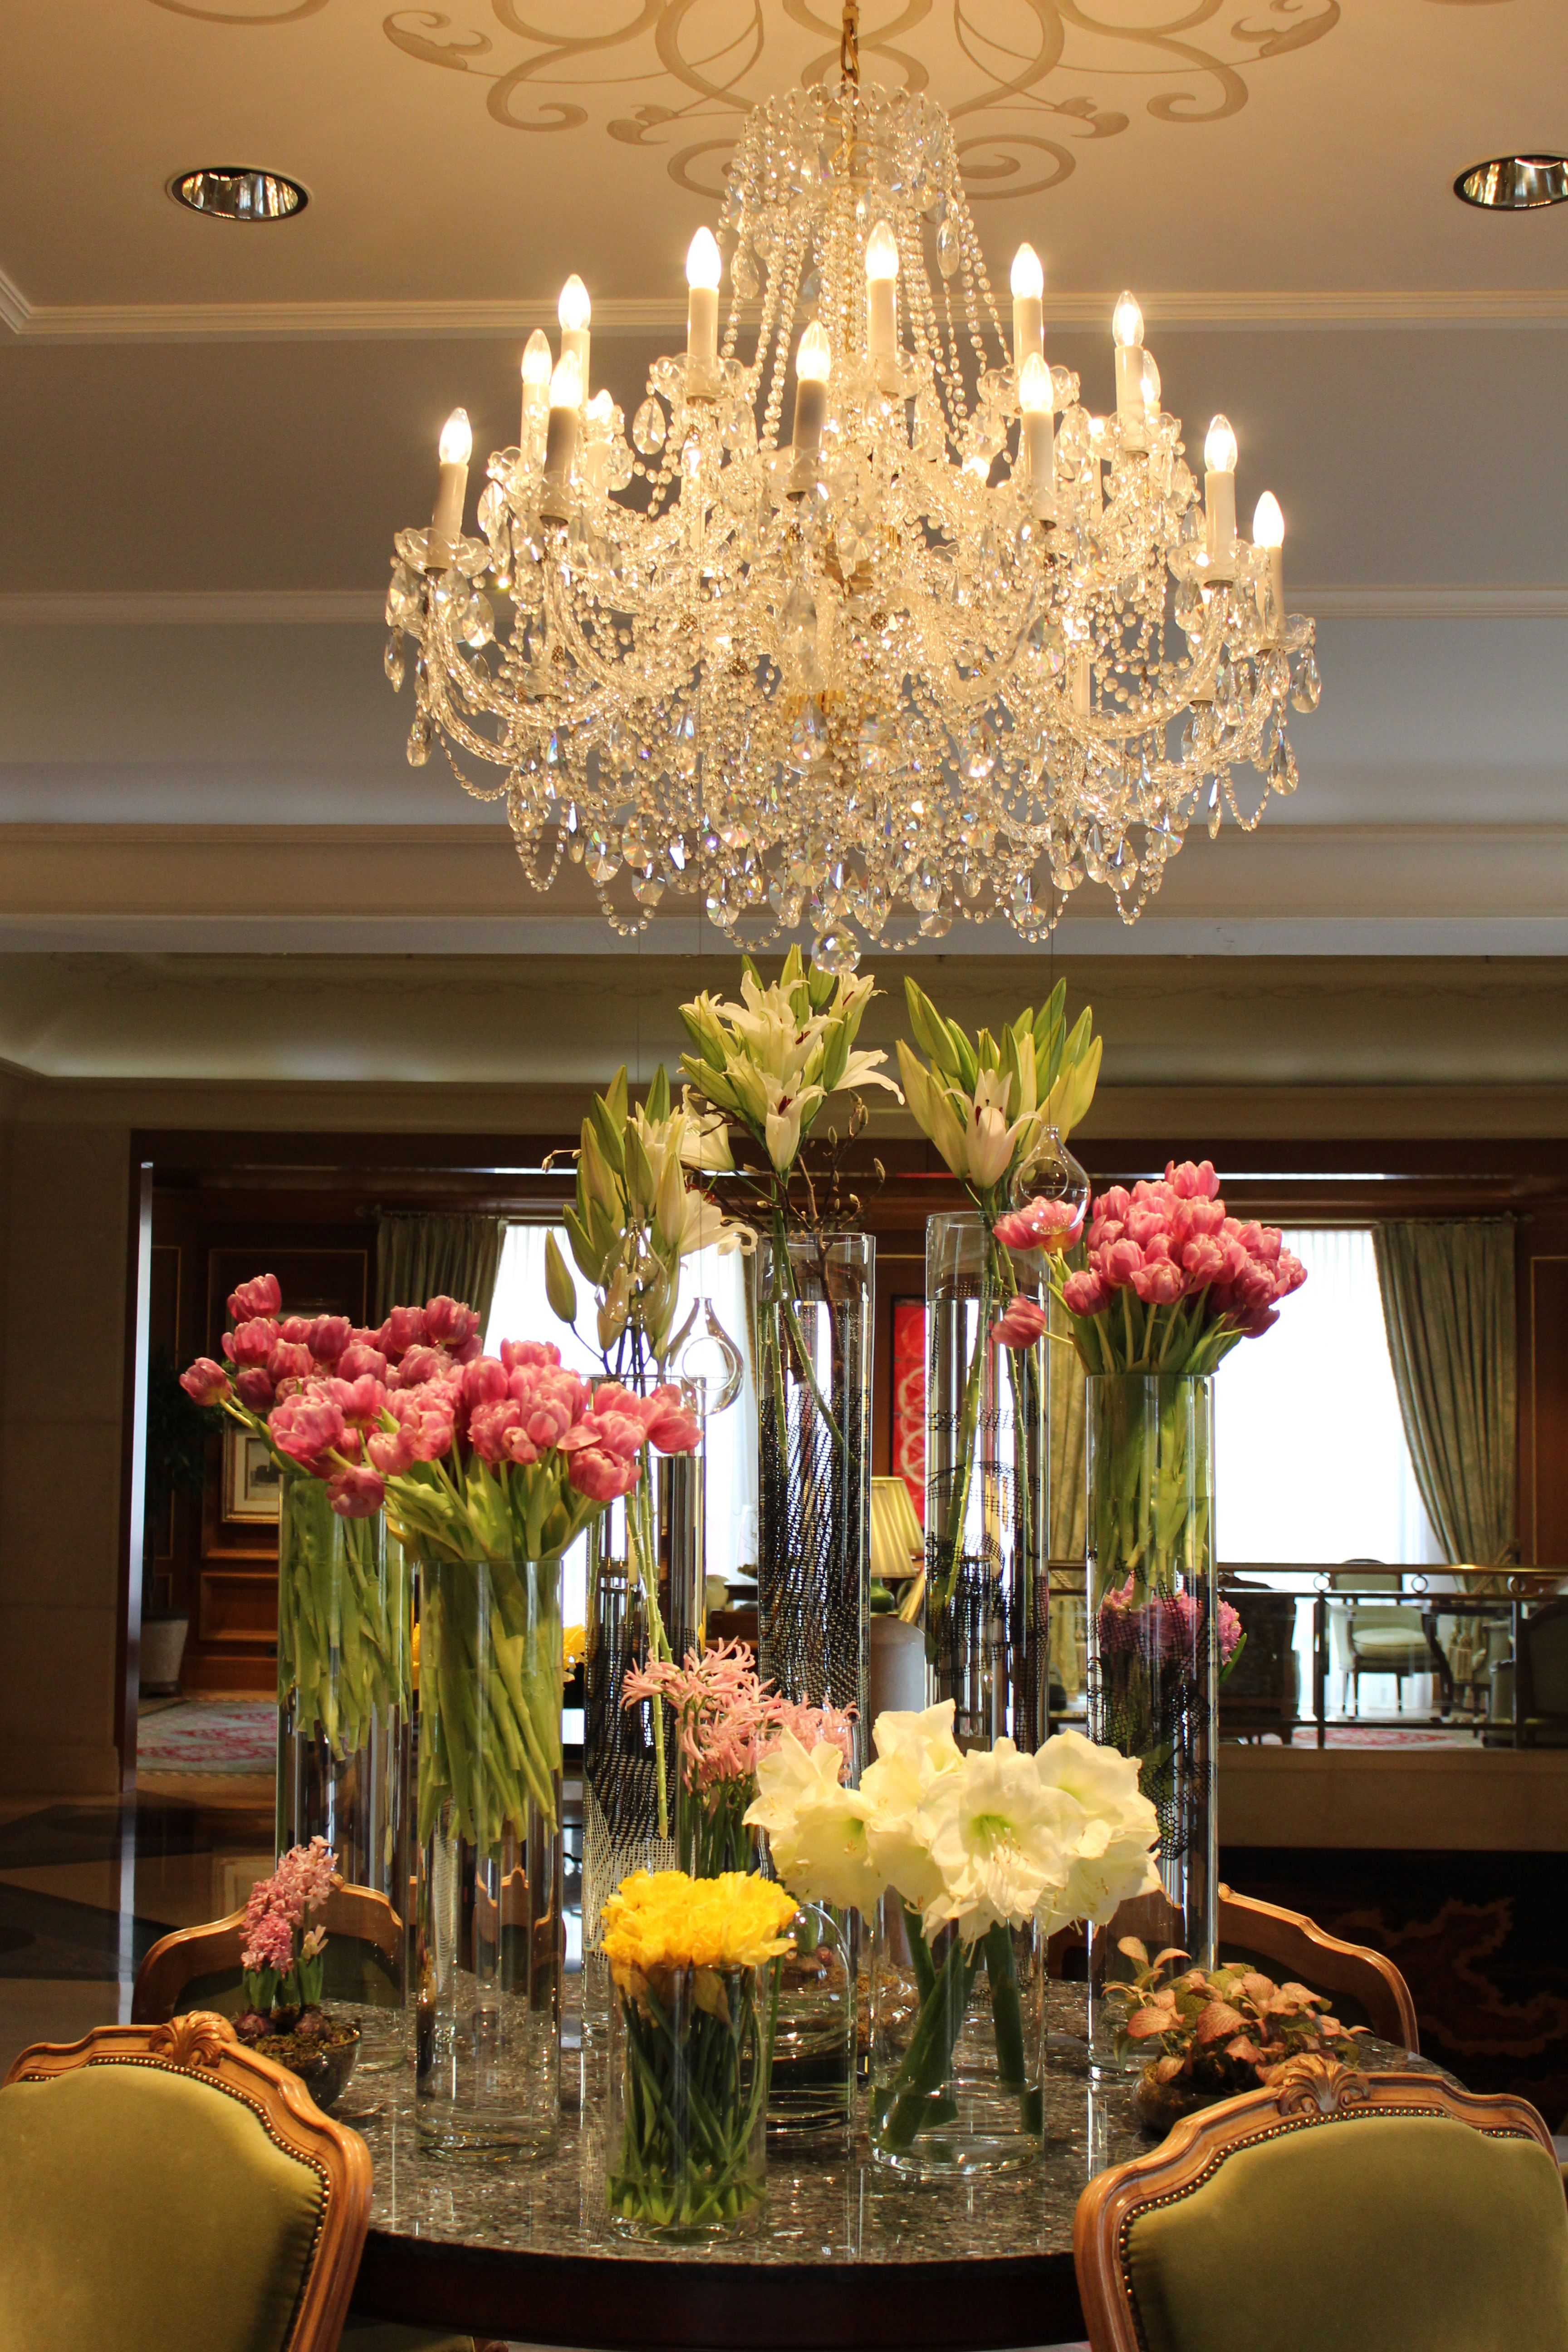 Our lobby flowers at their very best flourishing moment